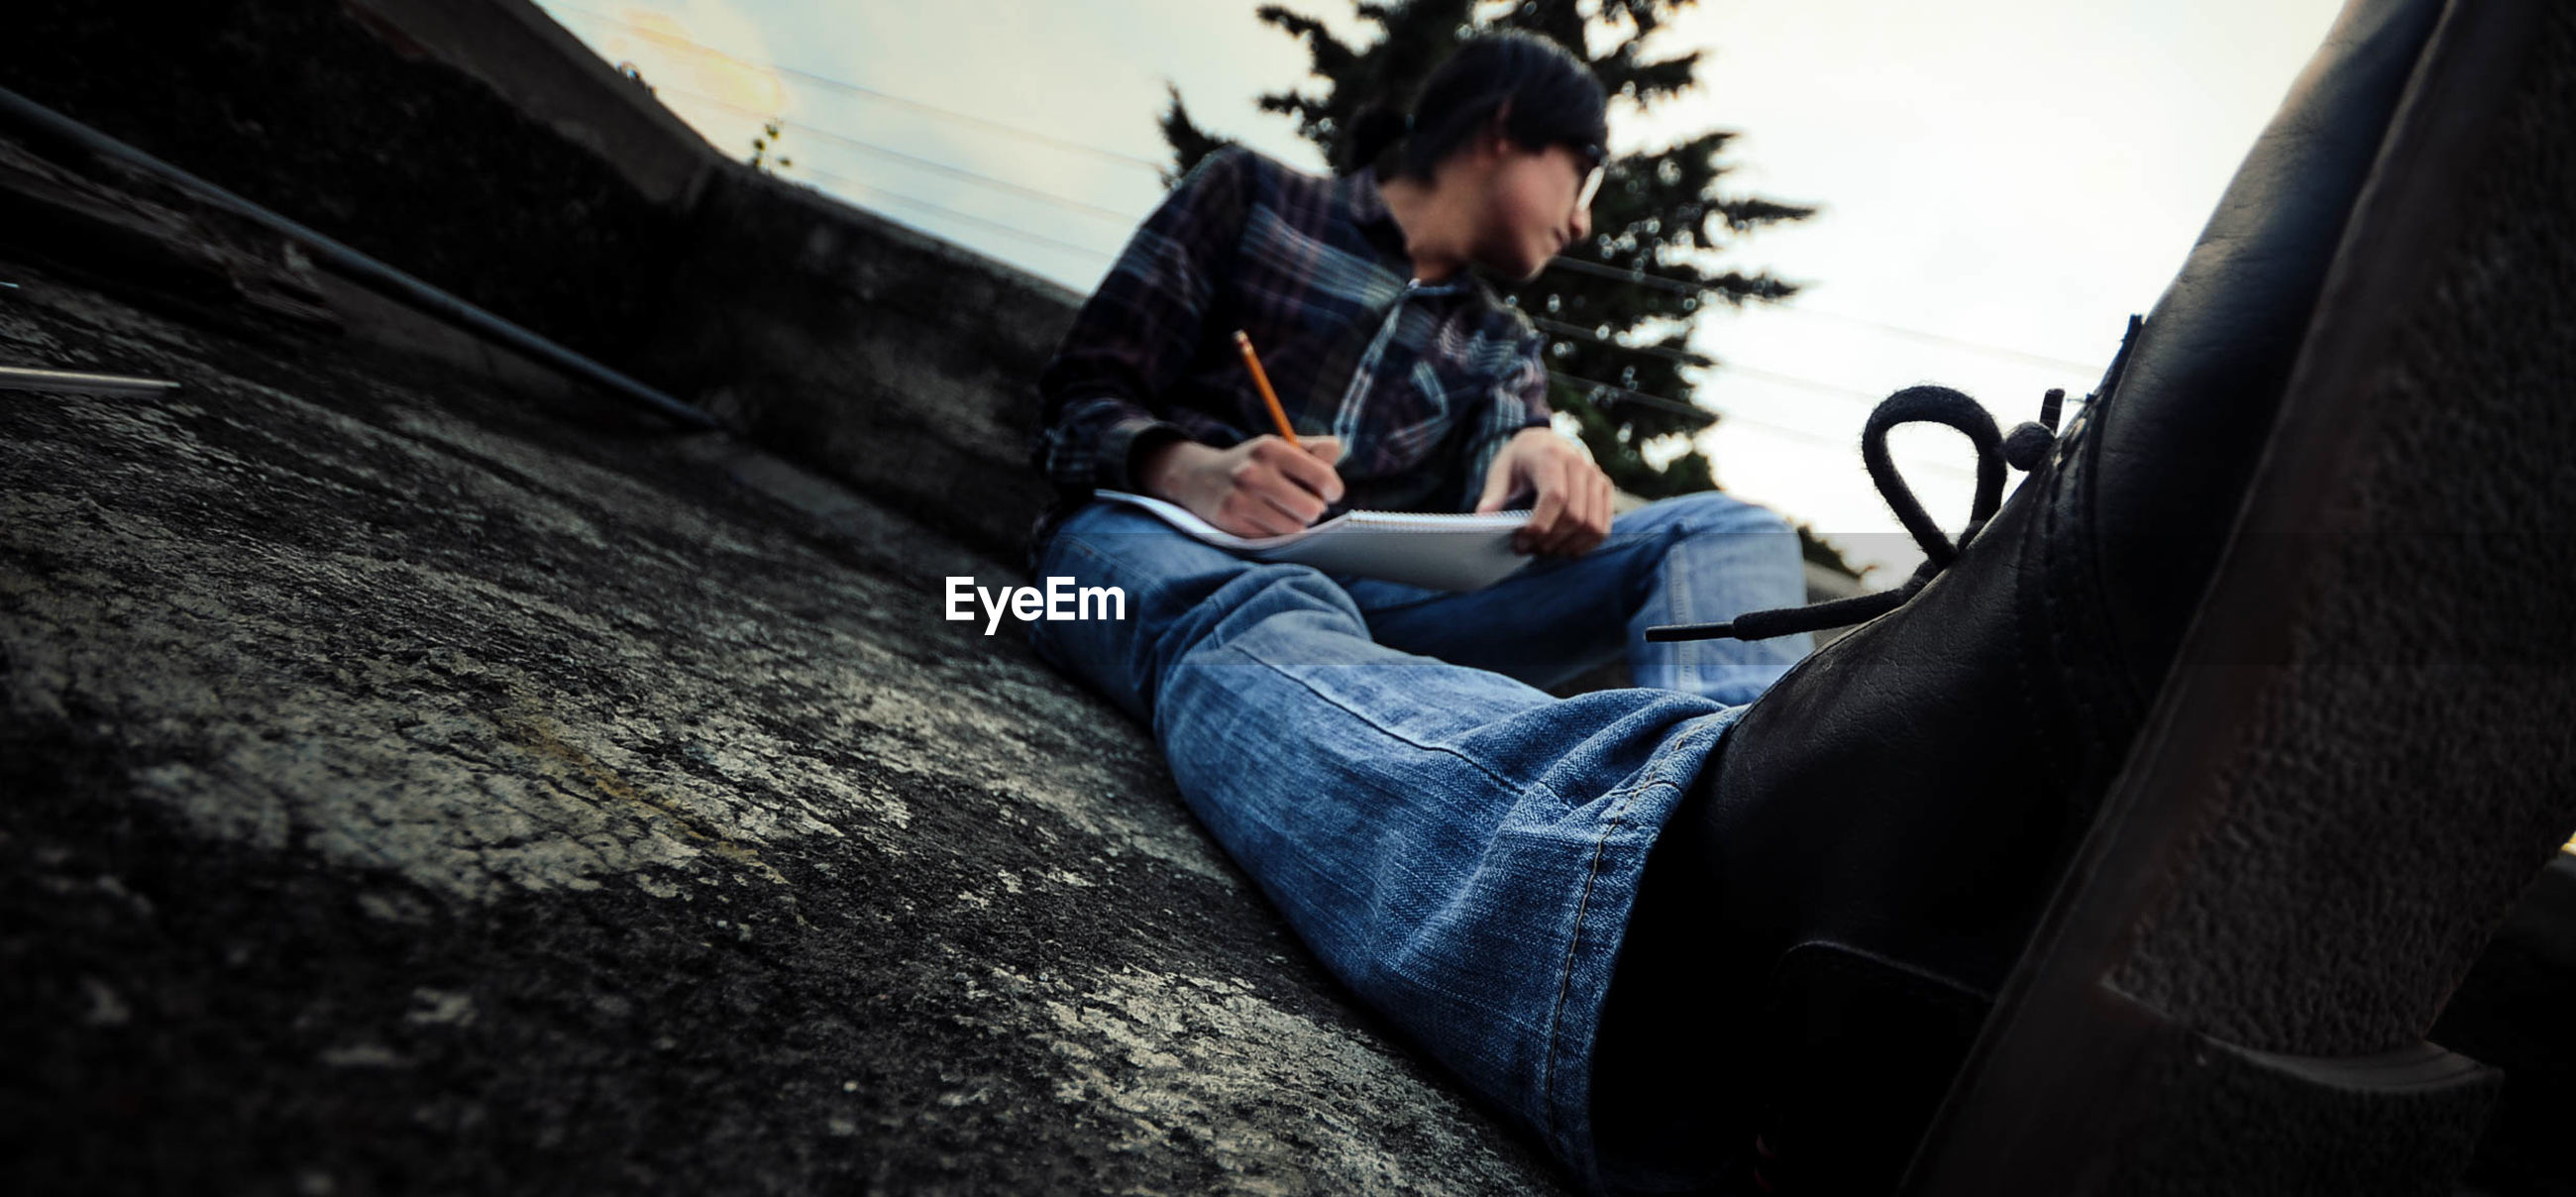 Surface level image of young man looking away while writing on paper at building terrace